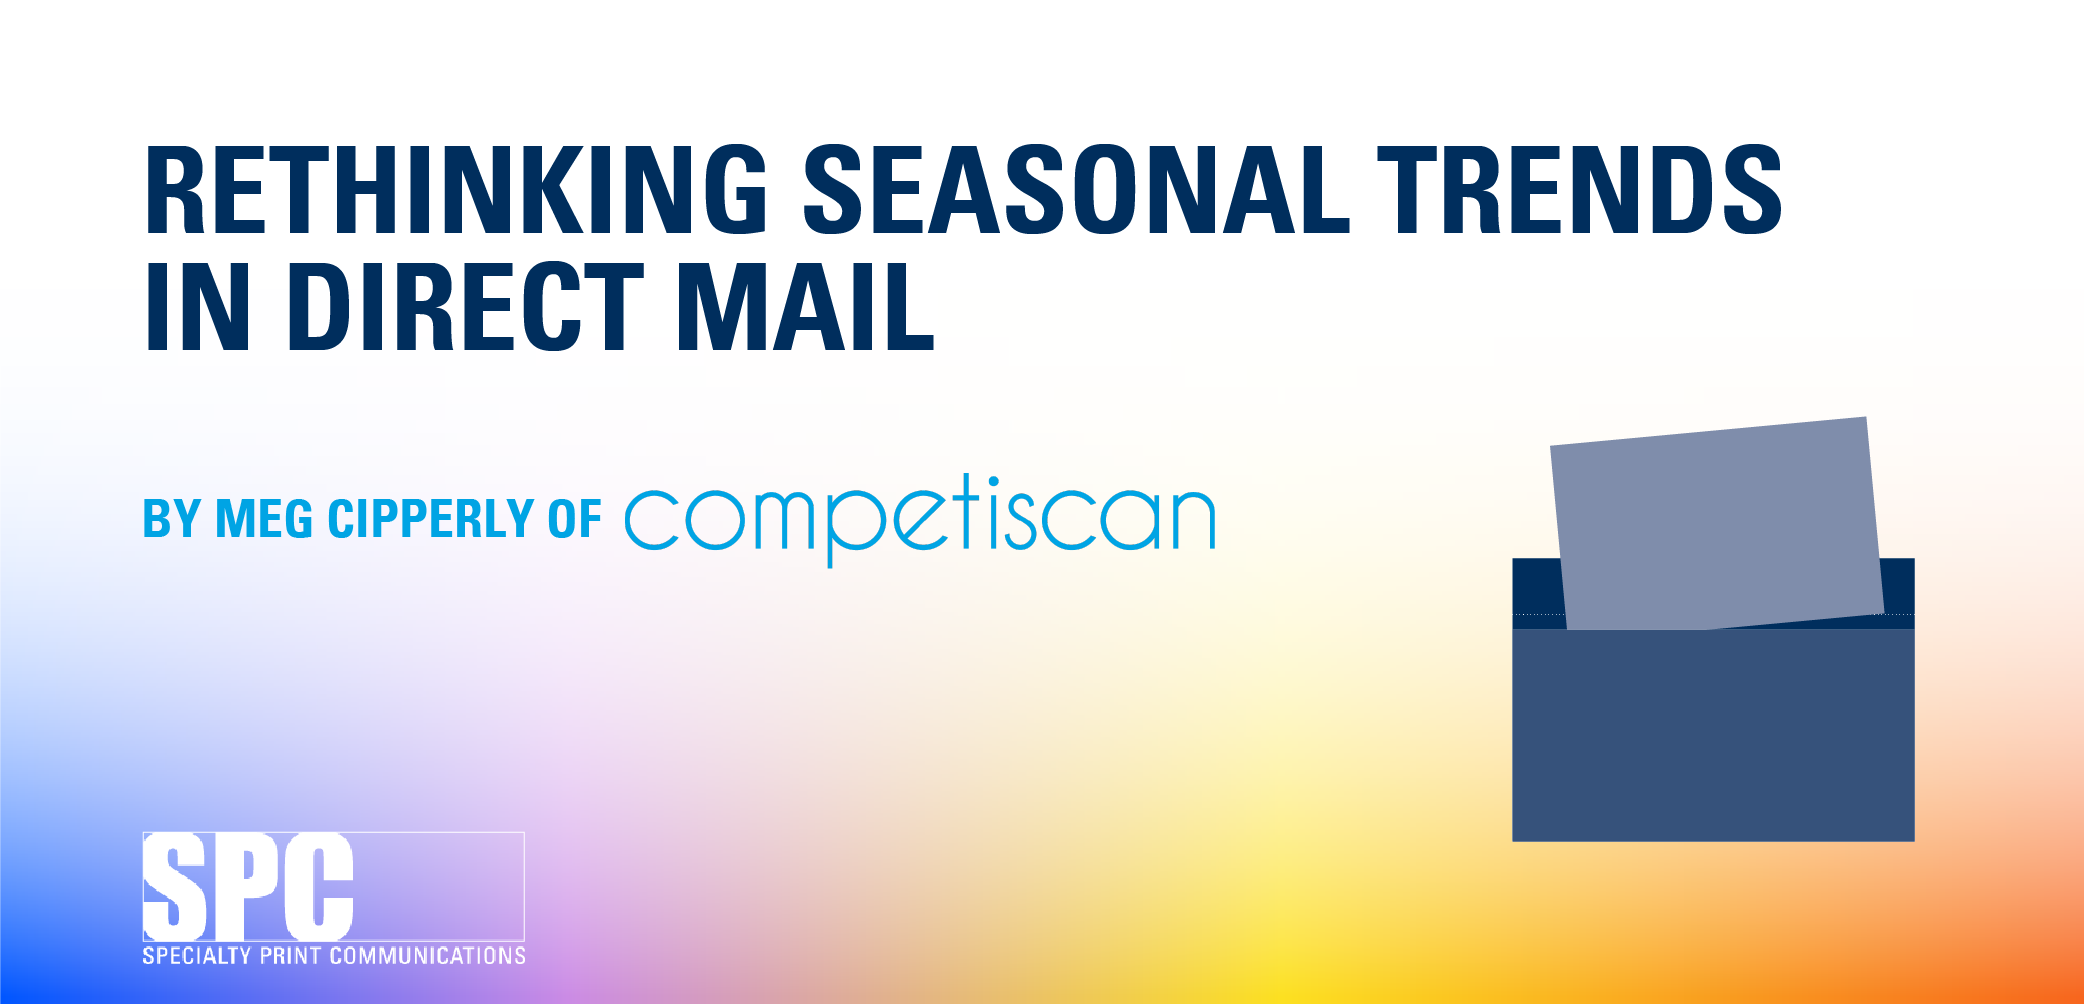 Rethinking Seasonal Trends in Direct Mail